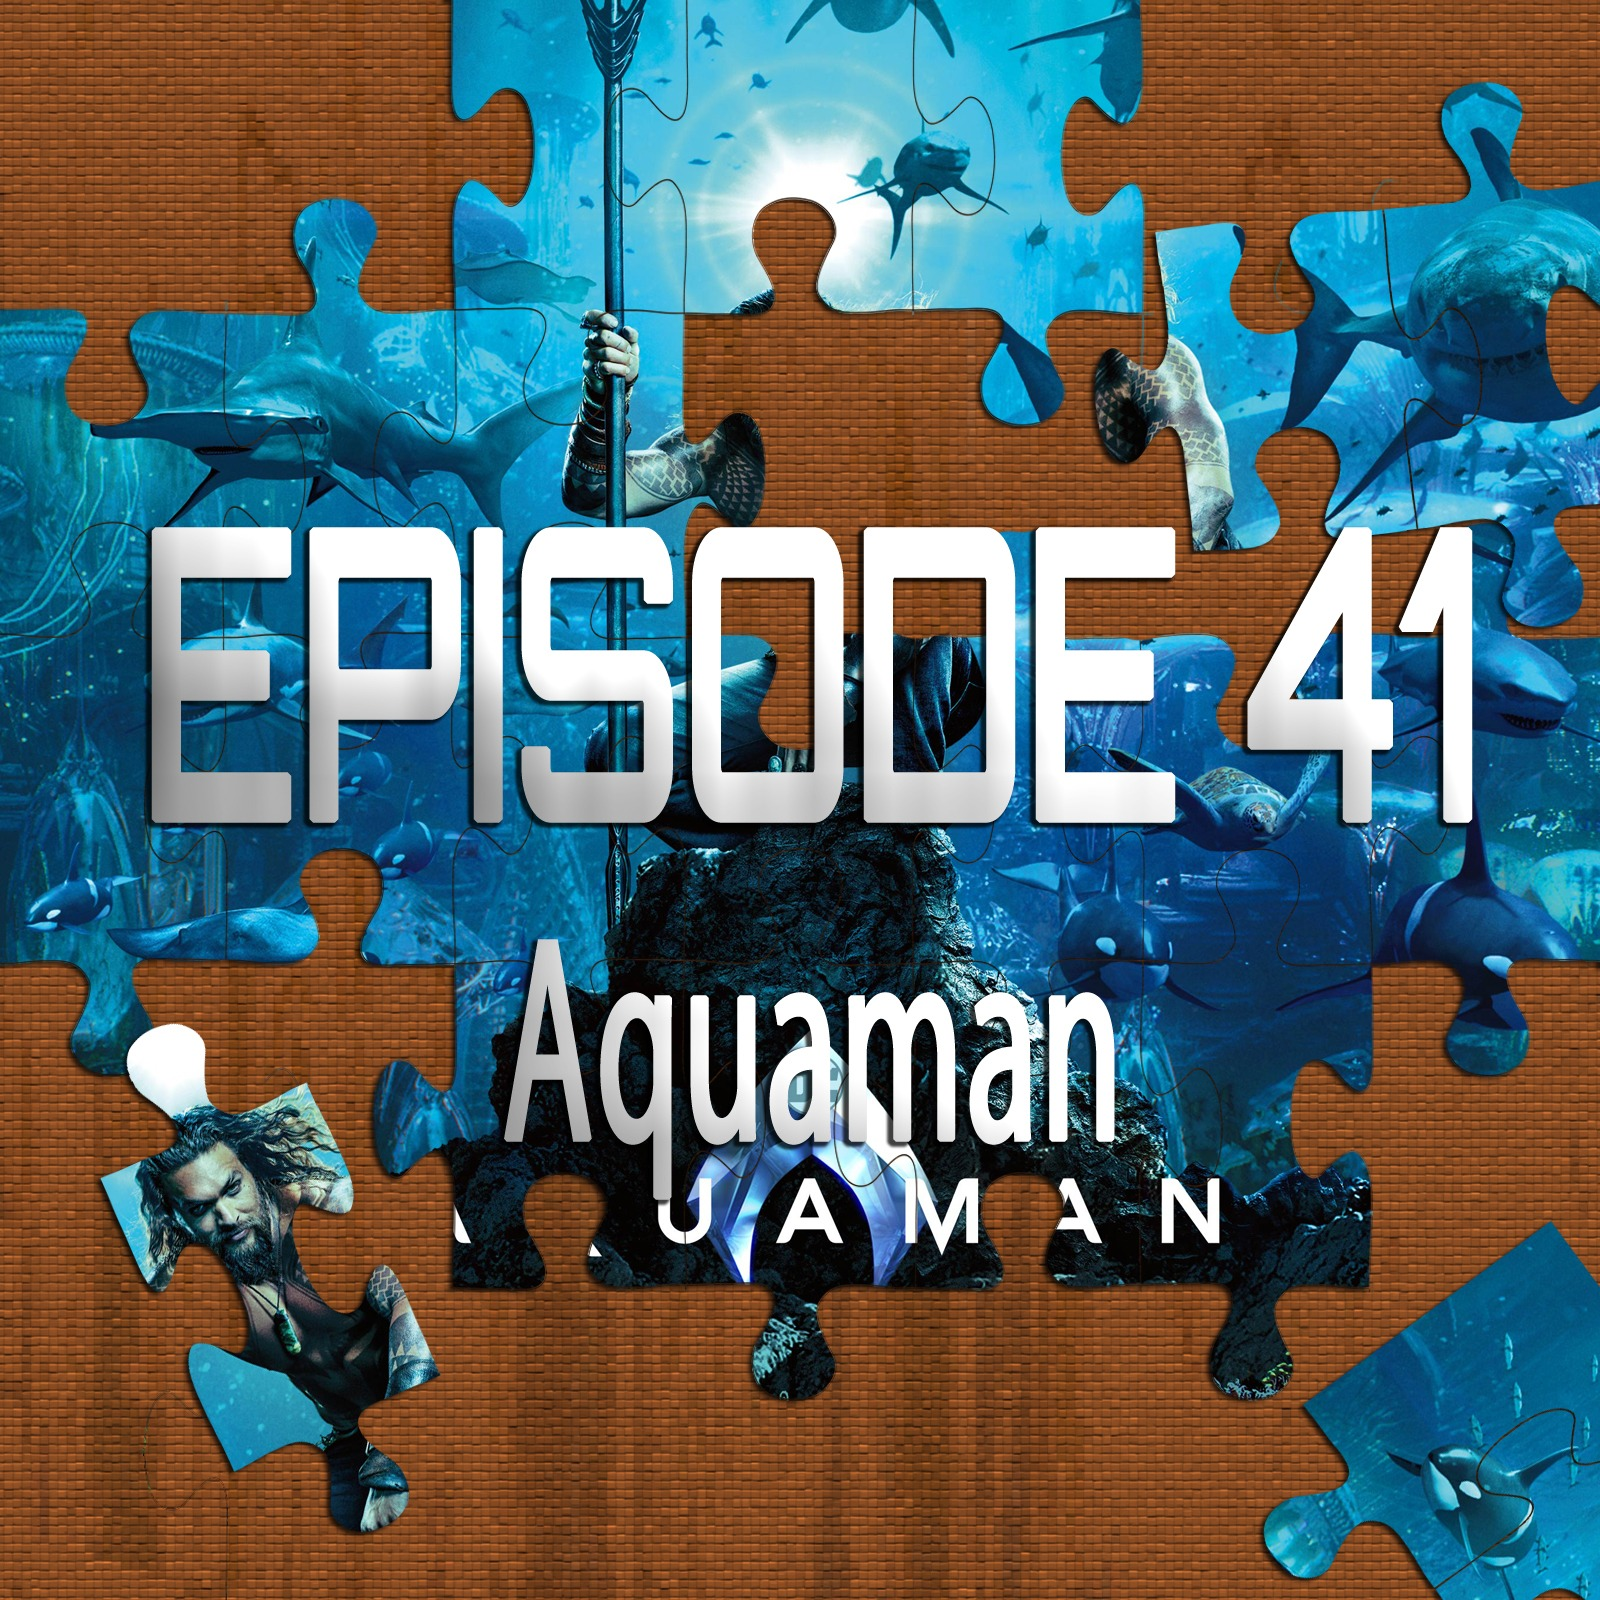 Aquaman (Featuring Chad Clinton Freeman)